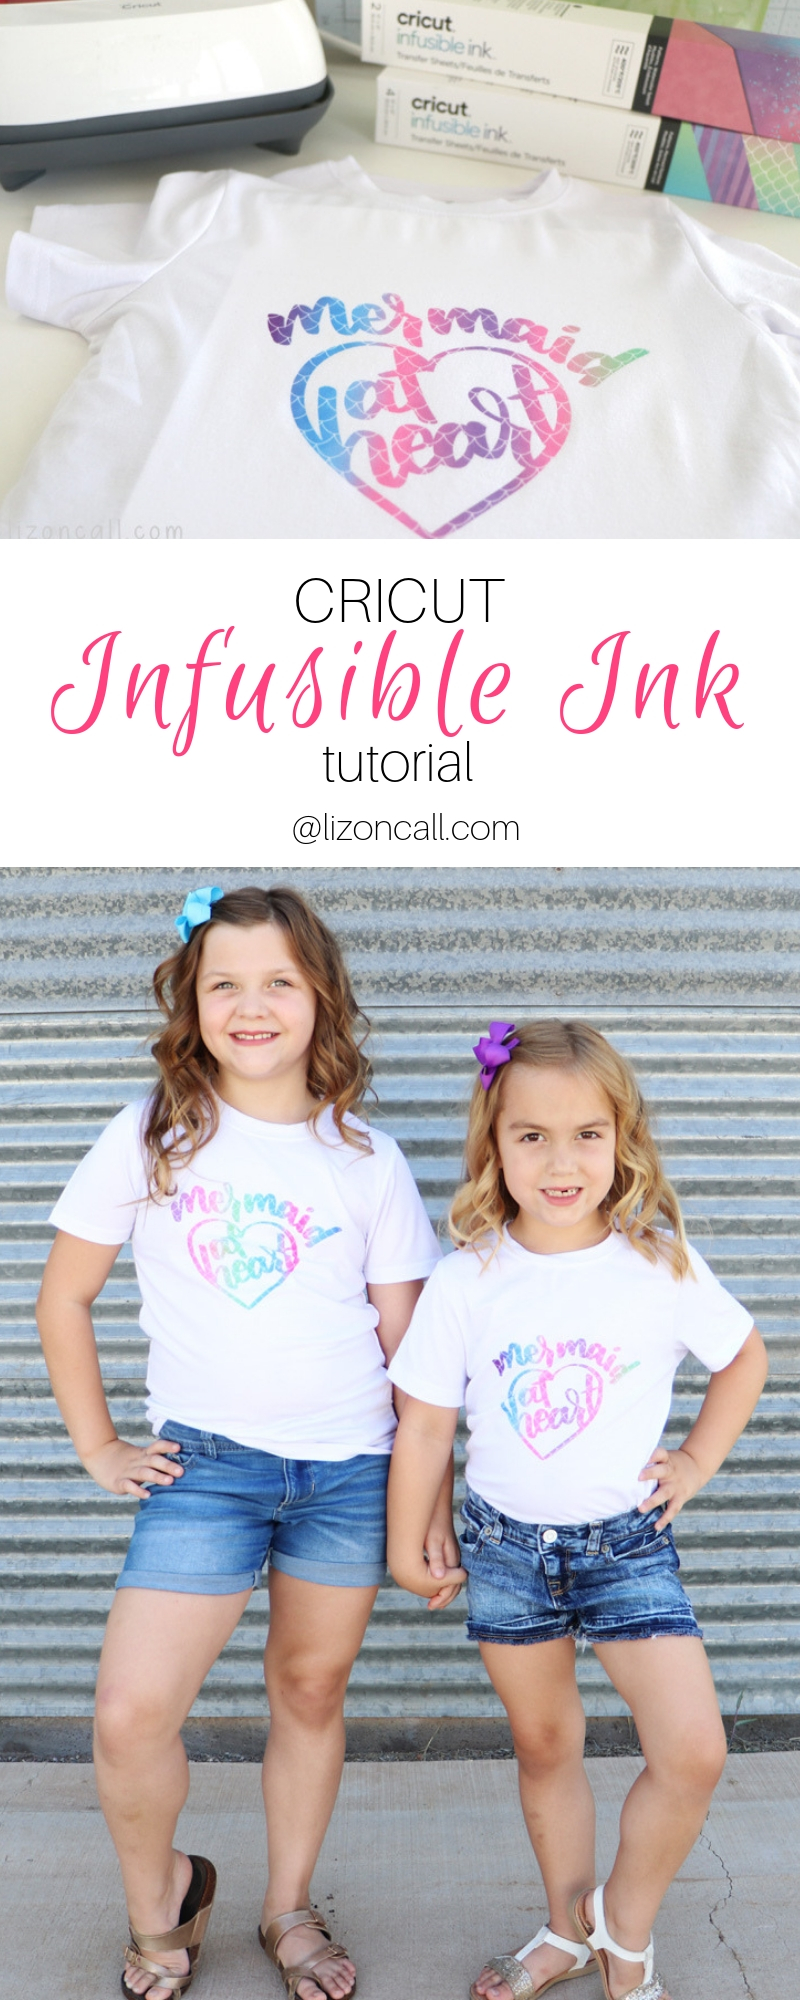 Pinnable image for Cricut Infusible Ink transfer sheets and shirts